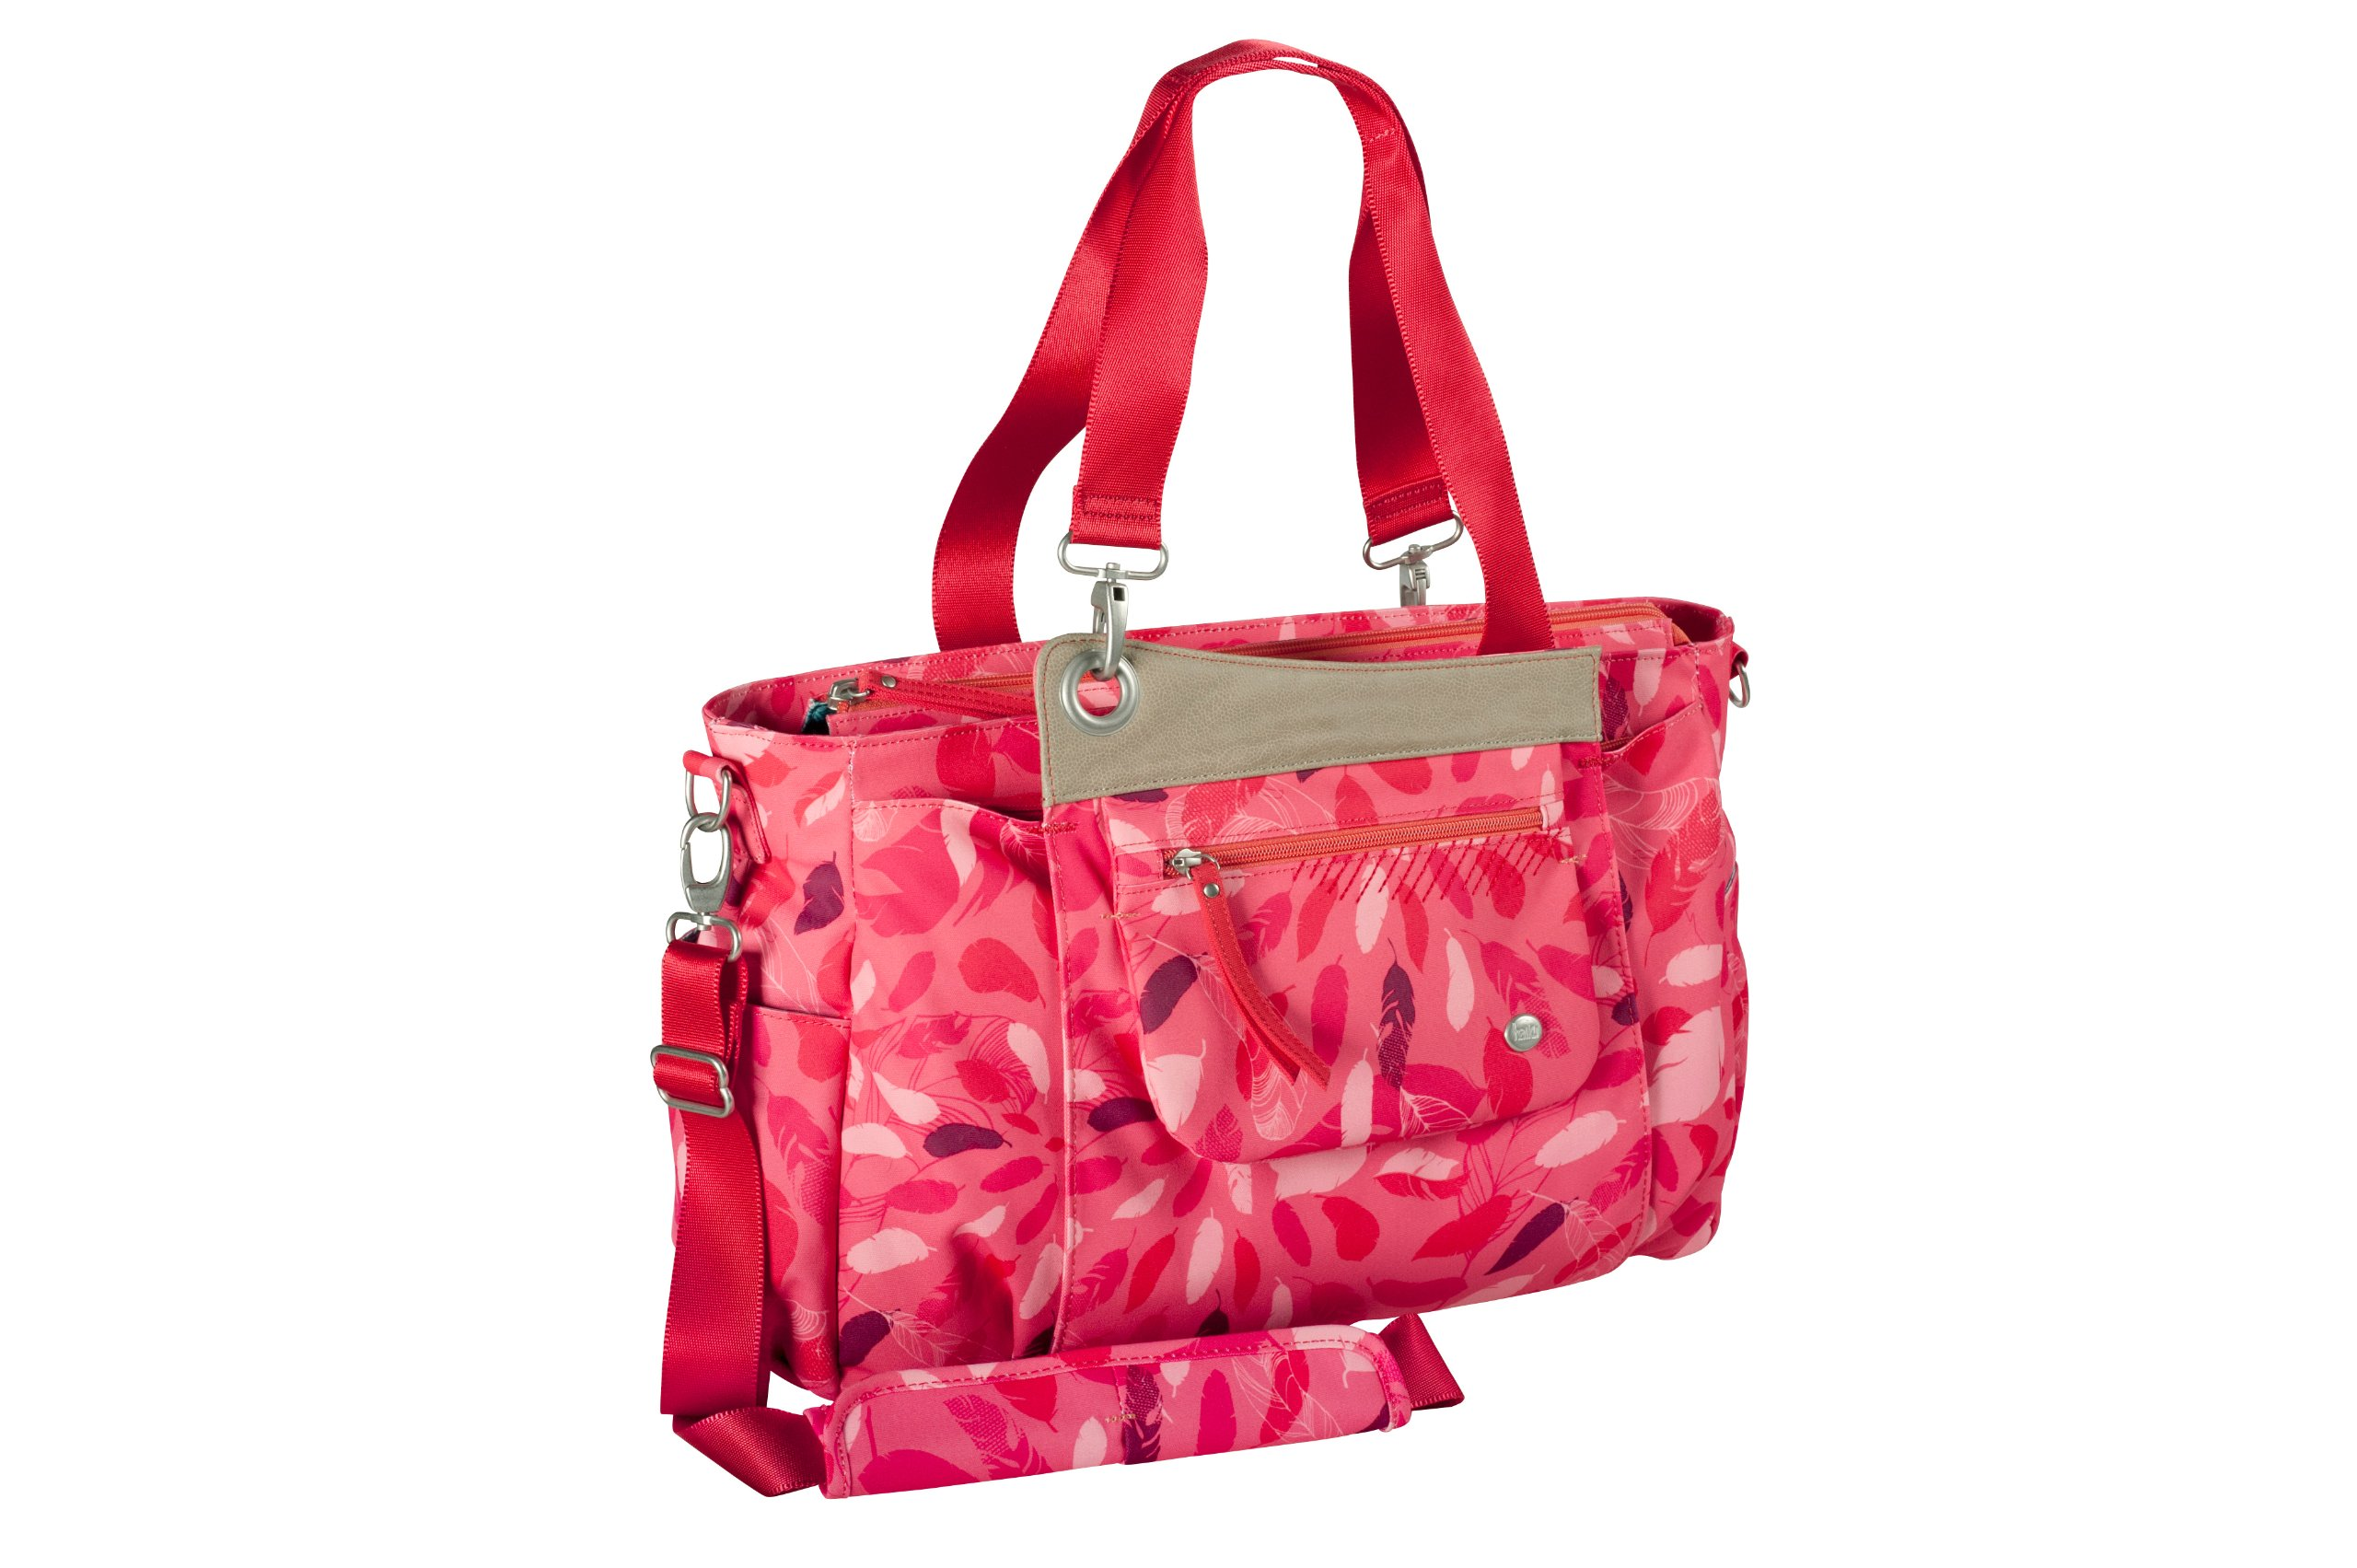 Haiku Women's Work Horse Eco Tote Bag, Coral Feather Print